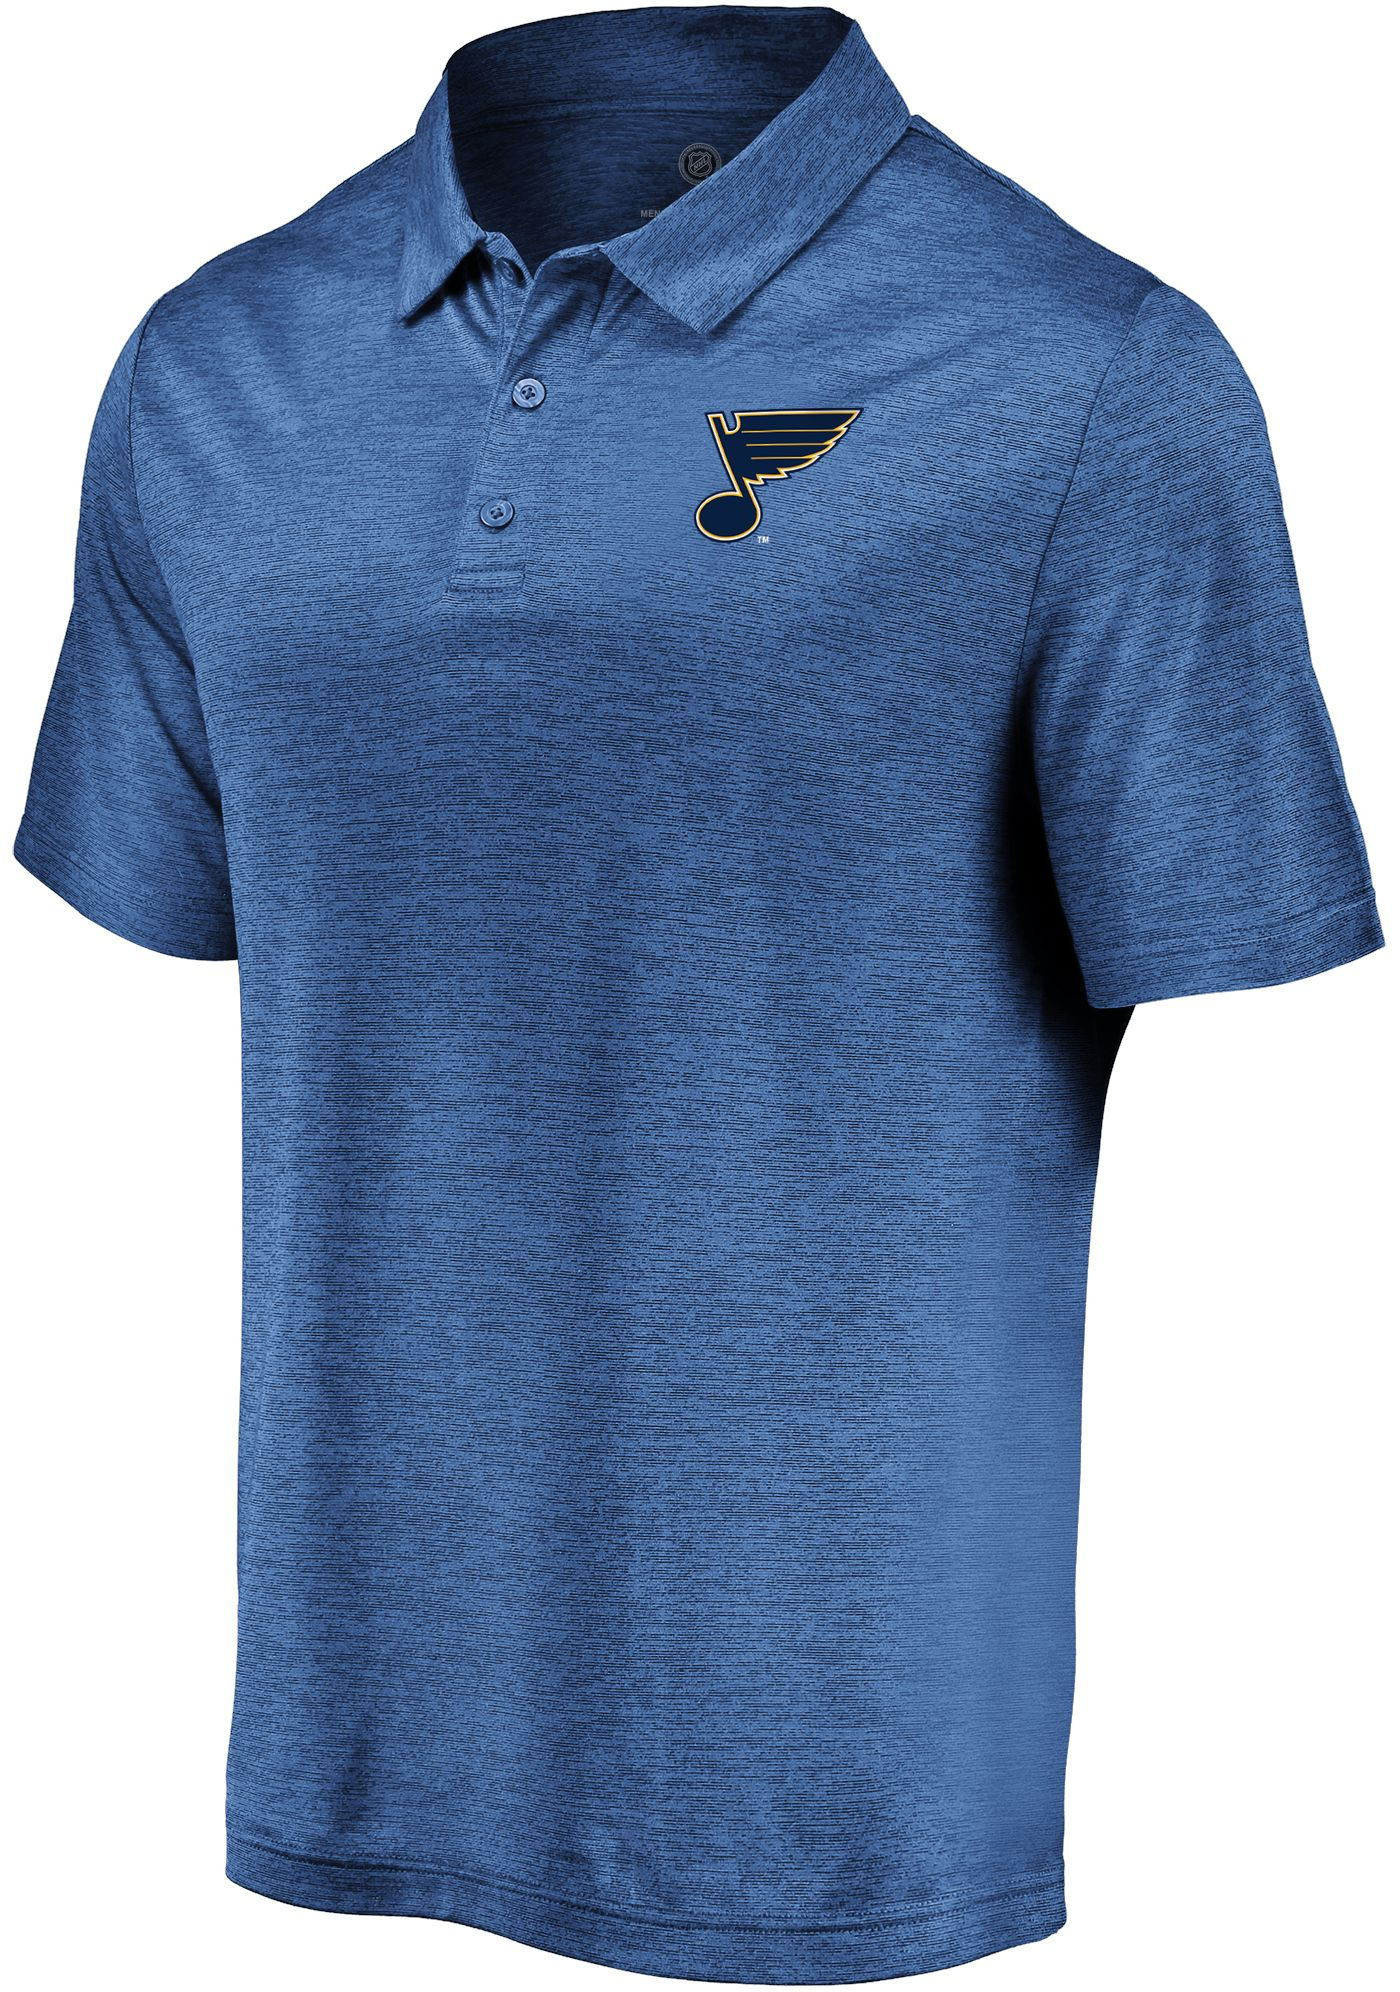 NHL Men's St. Louis Blues Iconic Royal Polo